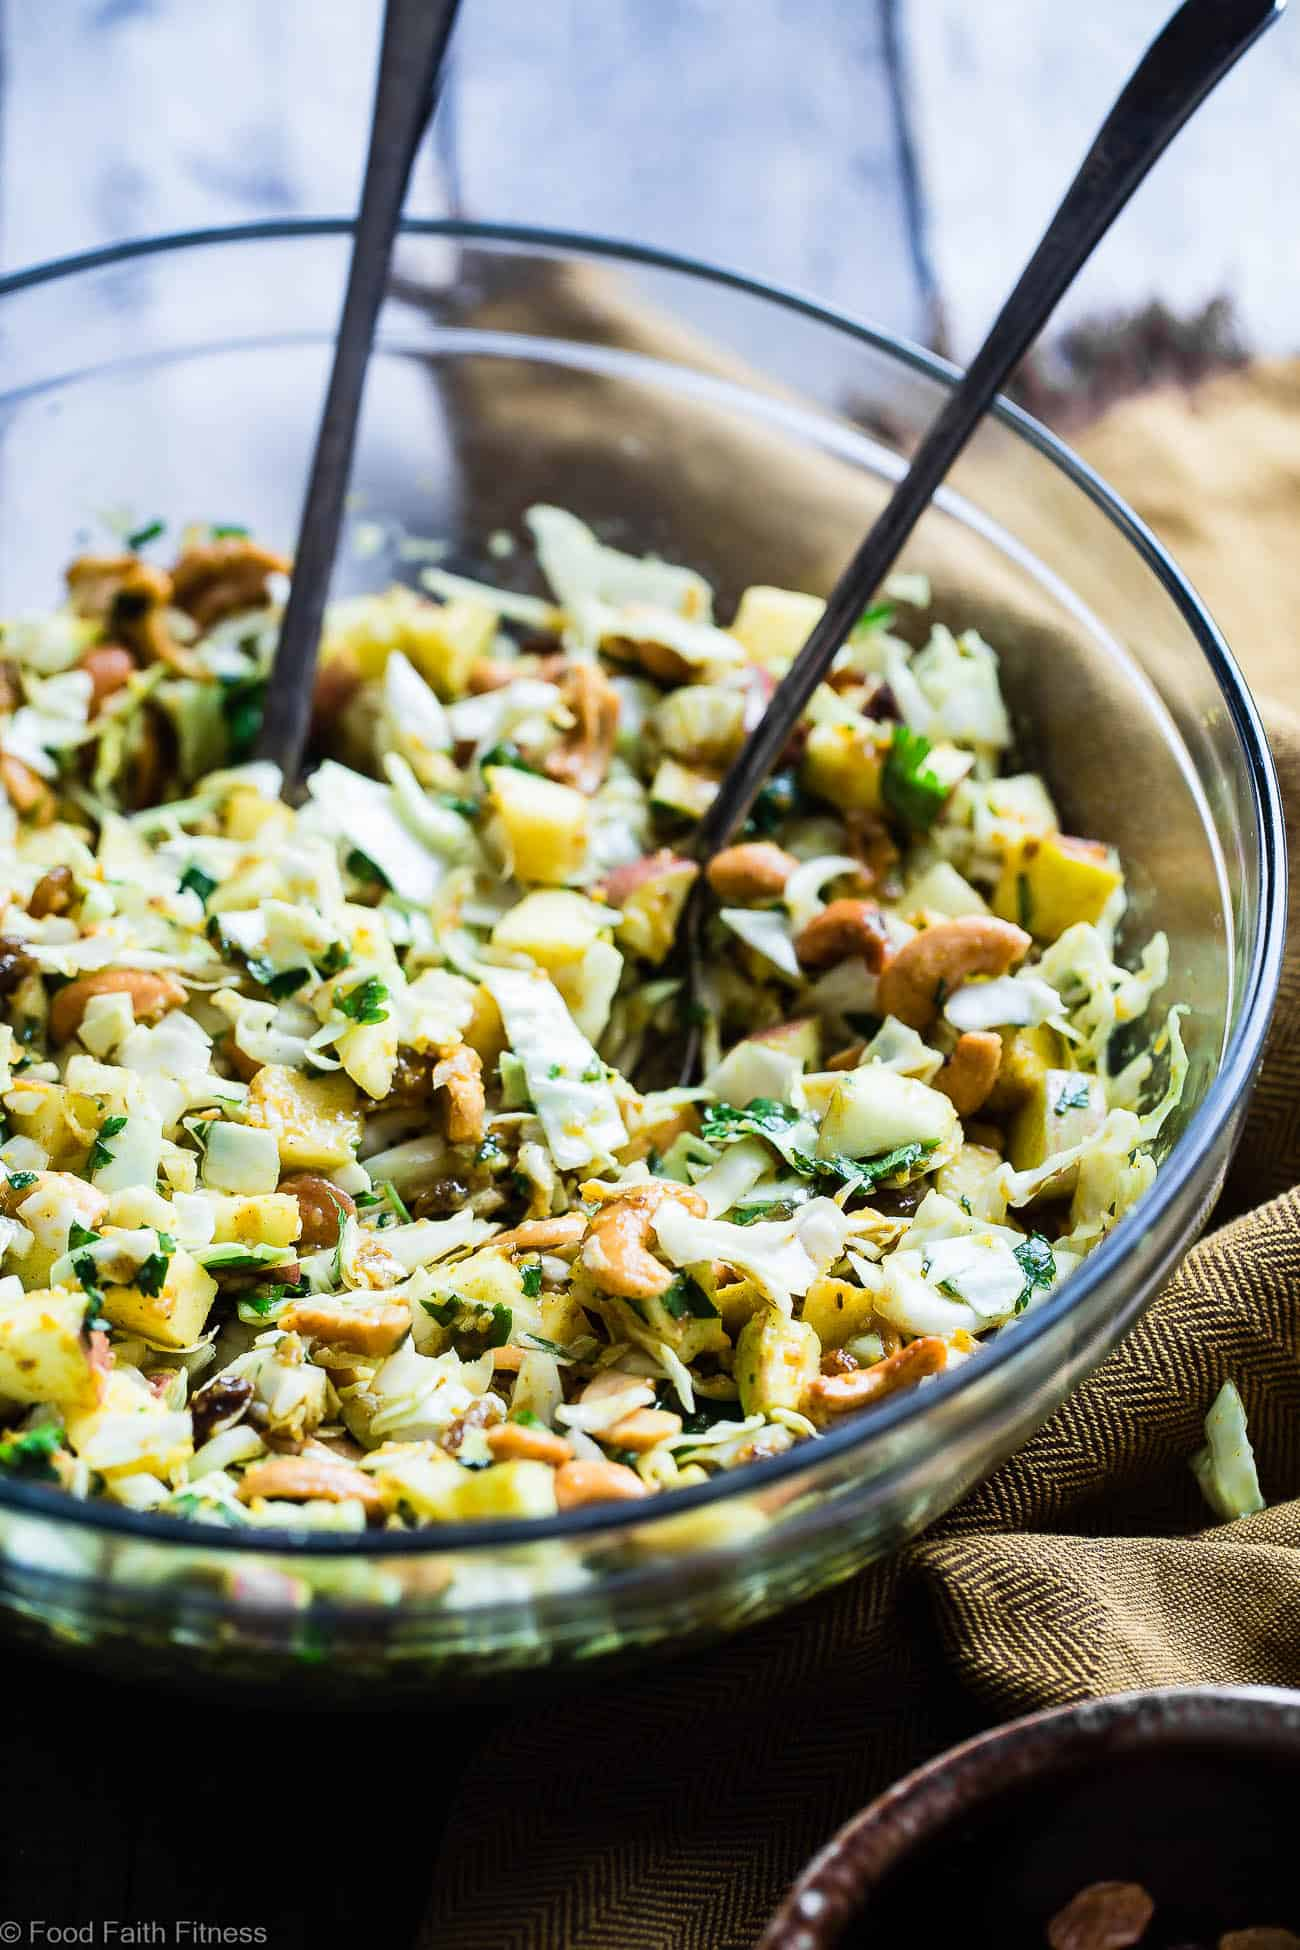 Curry Cashew Shredded Cabbage Salad with Apples - A sugar and gluten free healthy easy cabbage salad recipe that is mixed witha creamy curry dressing and crunchy cashews! A healthy, paleo and whole30 side dish that everyone will love! | Foodfaithfitness.com | @FoodFaithFit